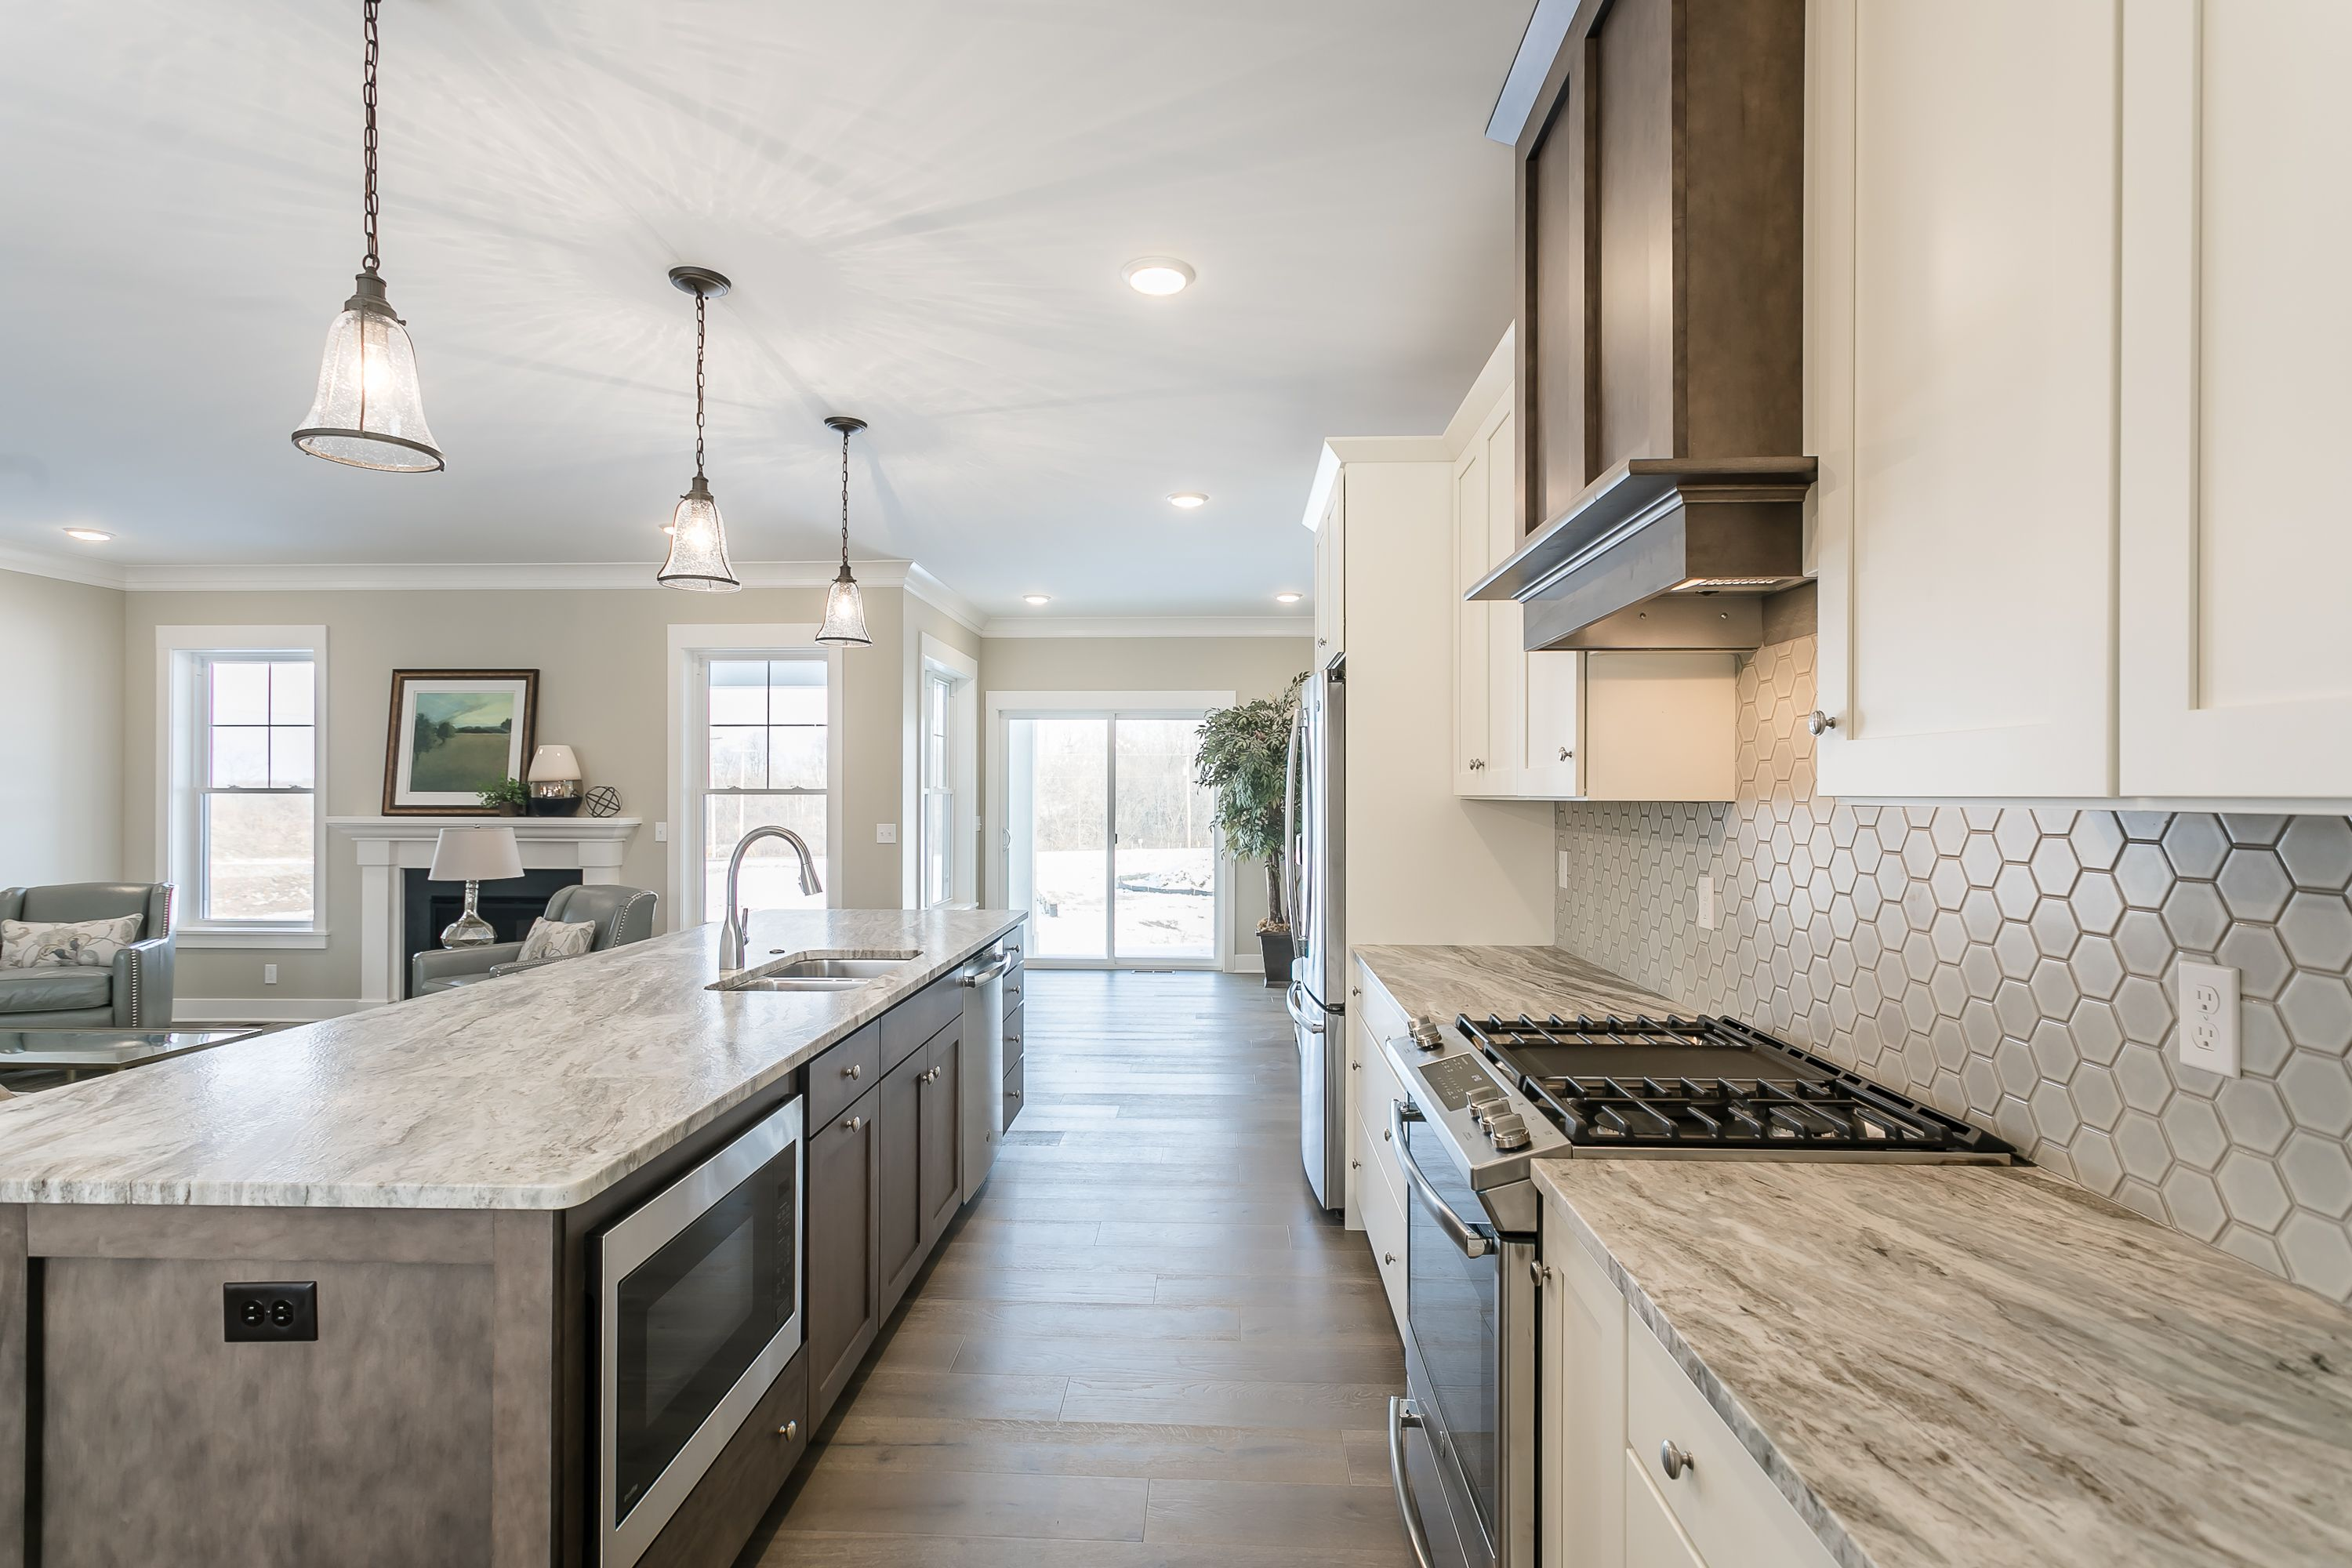 Kitchen featured in The Wellfleet By Riedman Homes in Rochester, NY